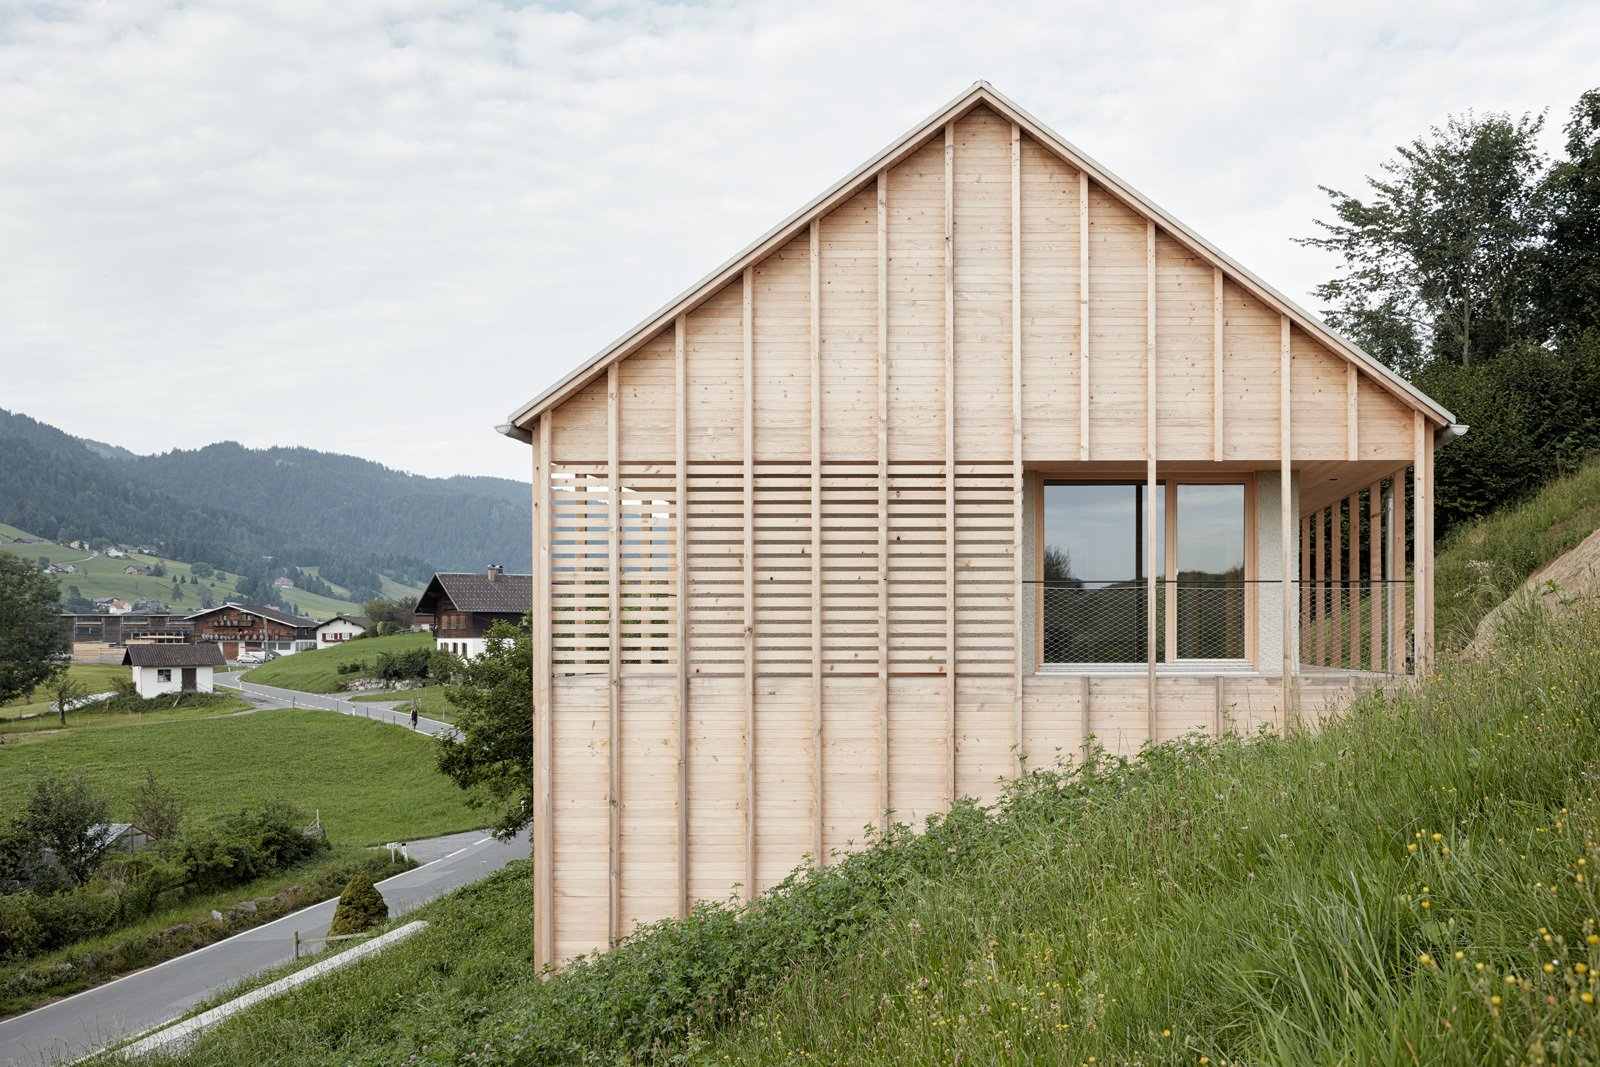 The roof was built with prefabricated wood elements.